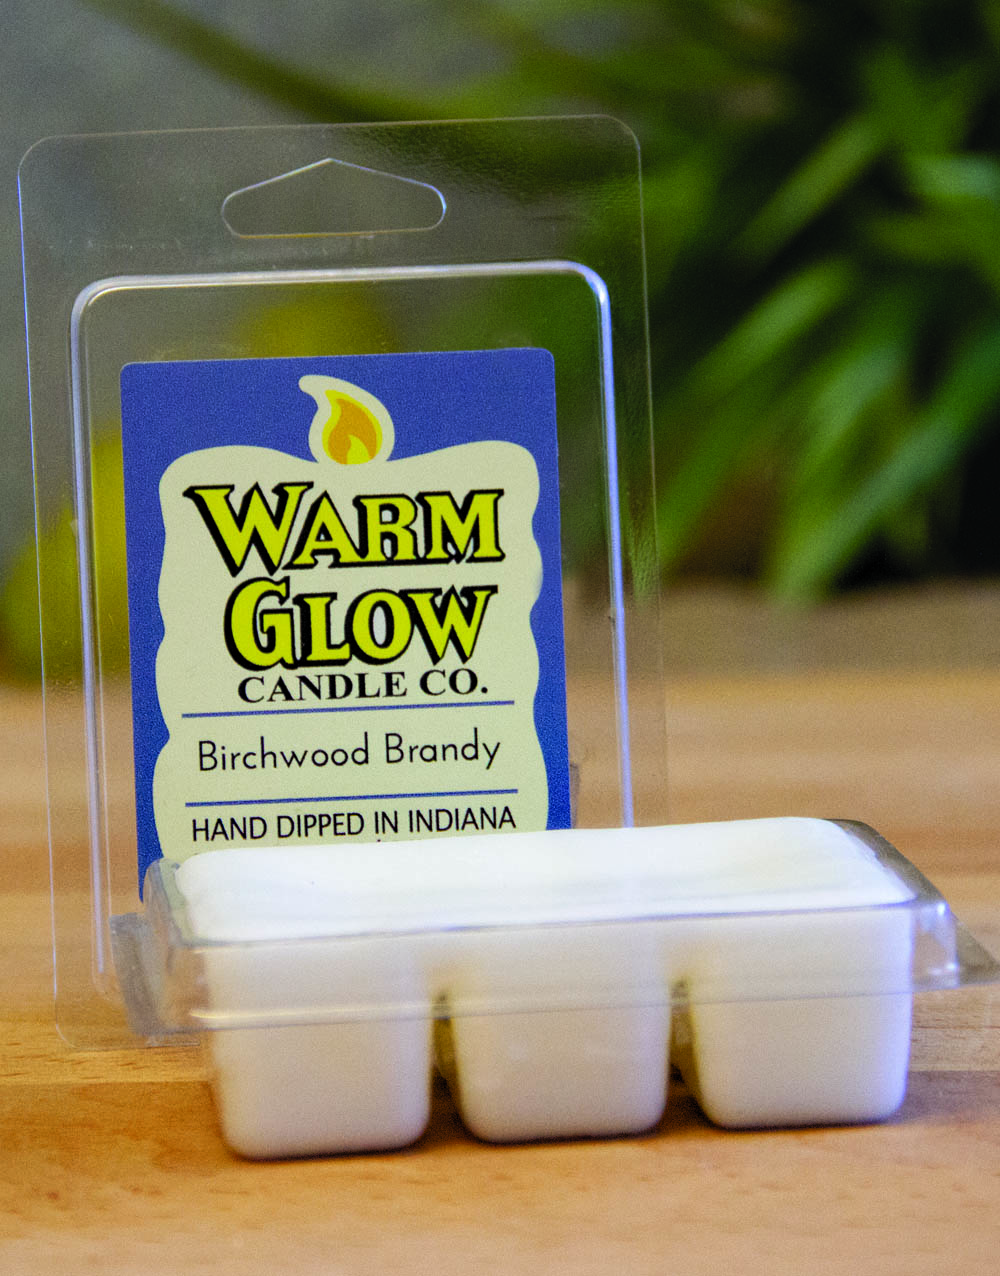 Birchwood-Brandy wax melts